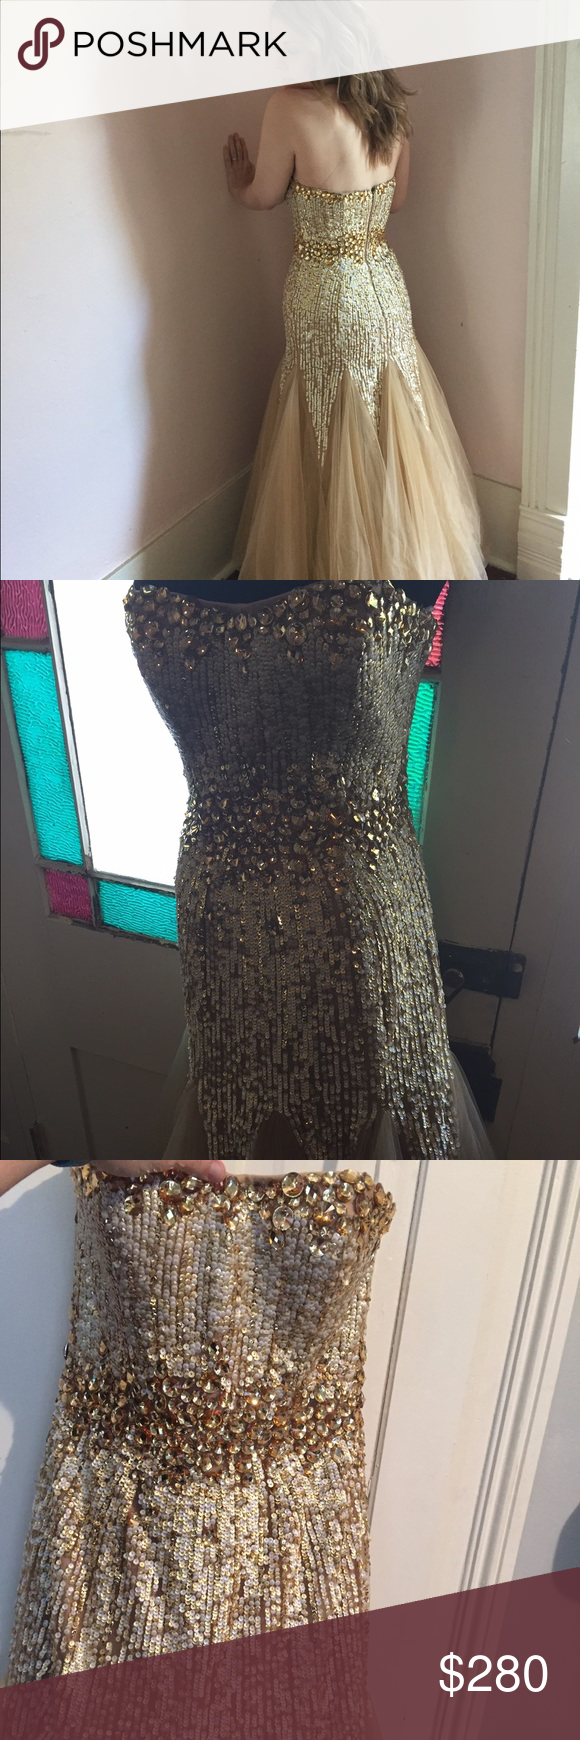 Sherri hill prom dress formal gown size gorgeous gold cream